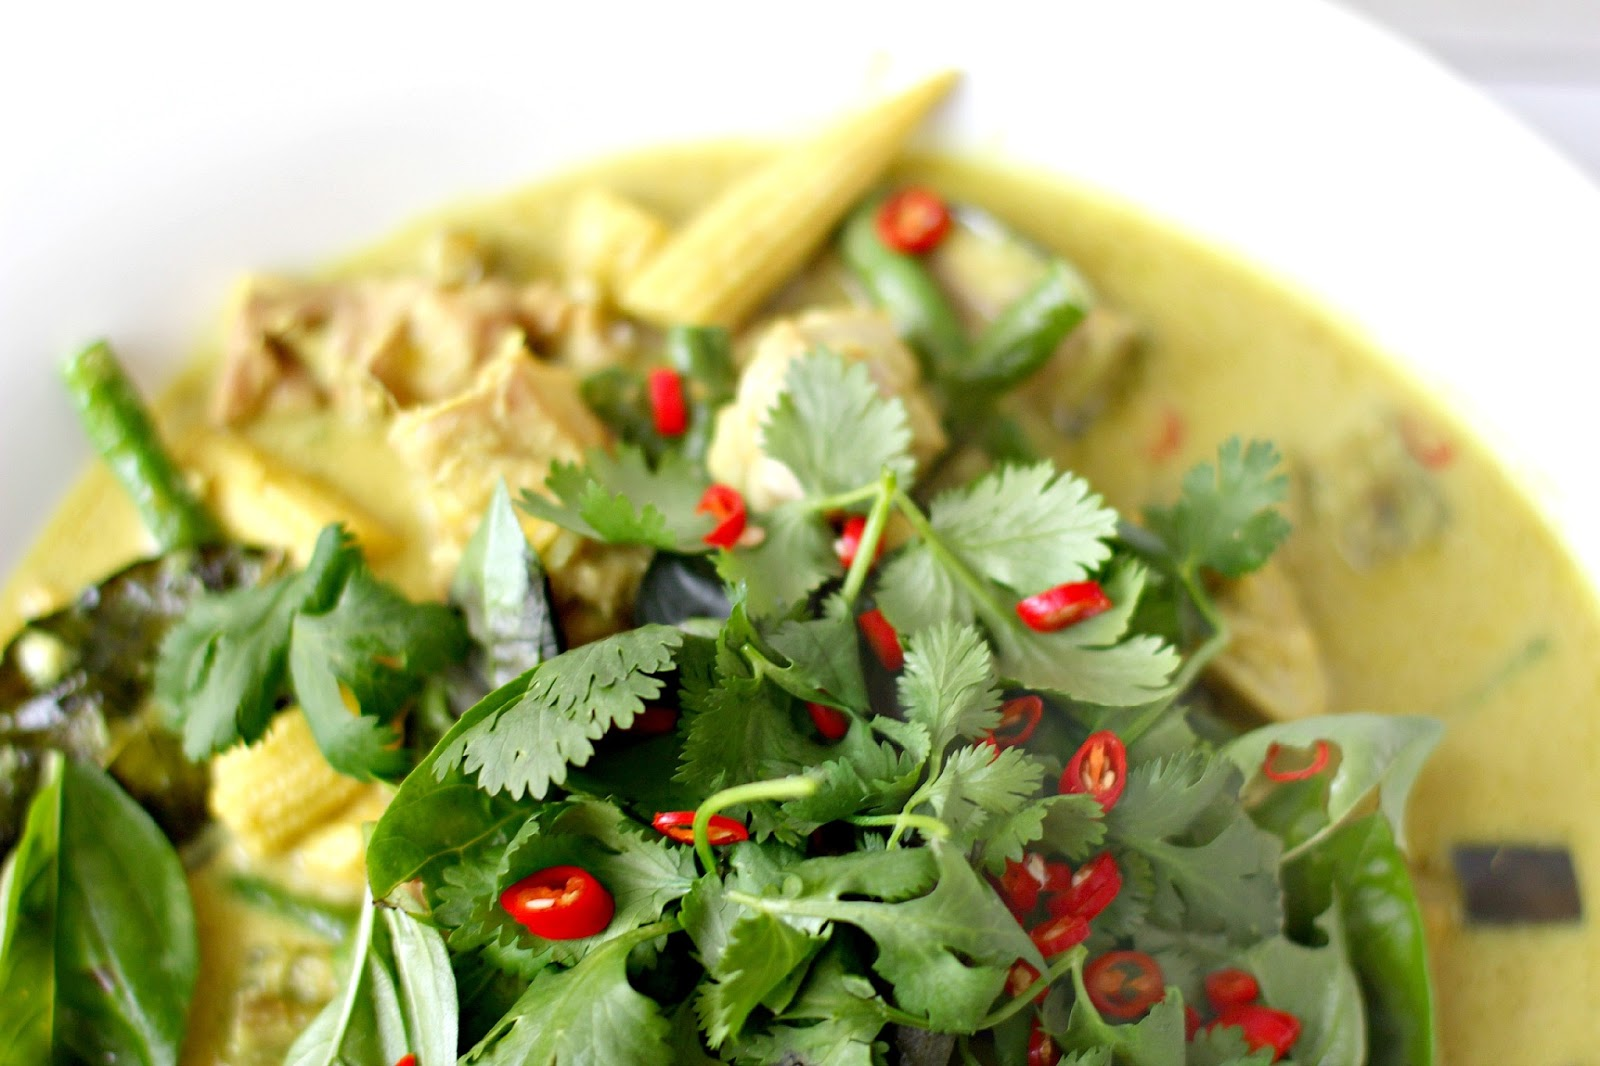 ... out, look no further. This Paleo Thai Green Curry is a real winner